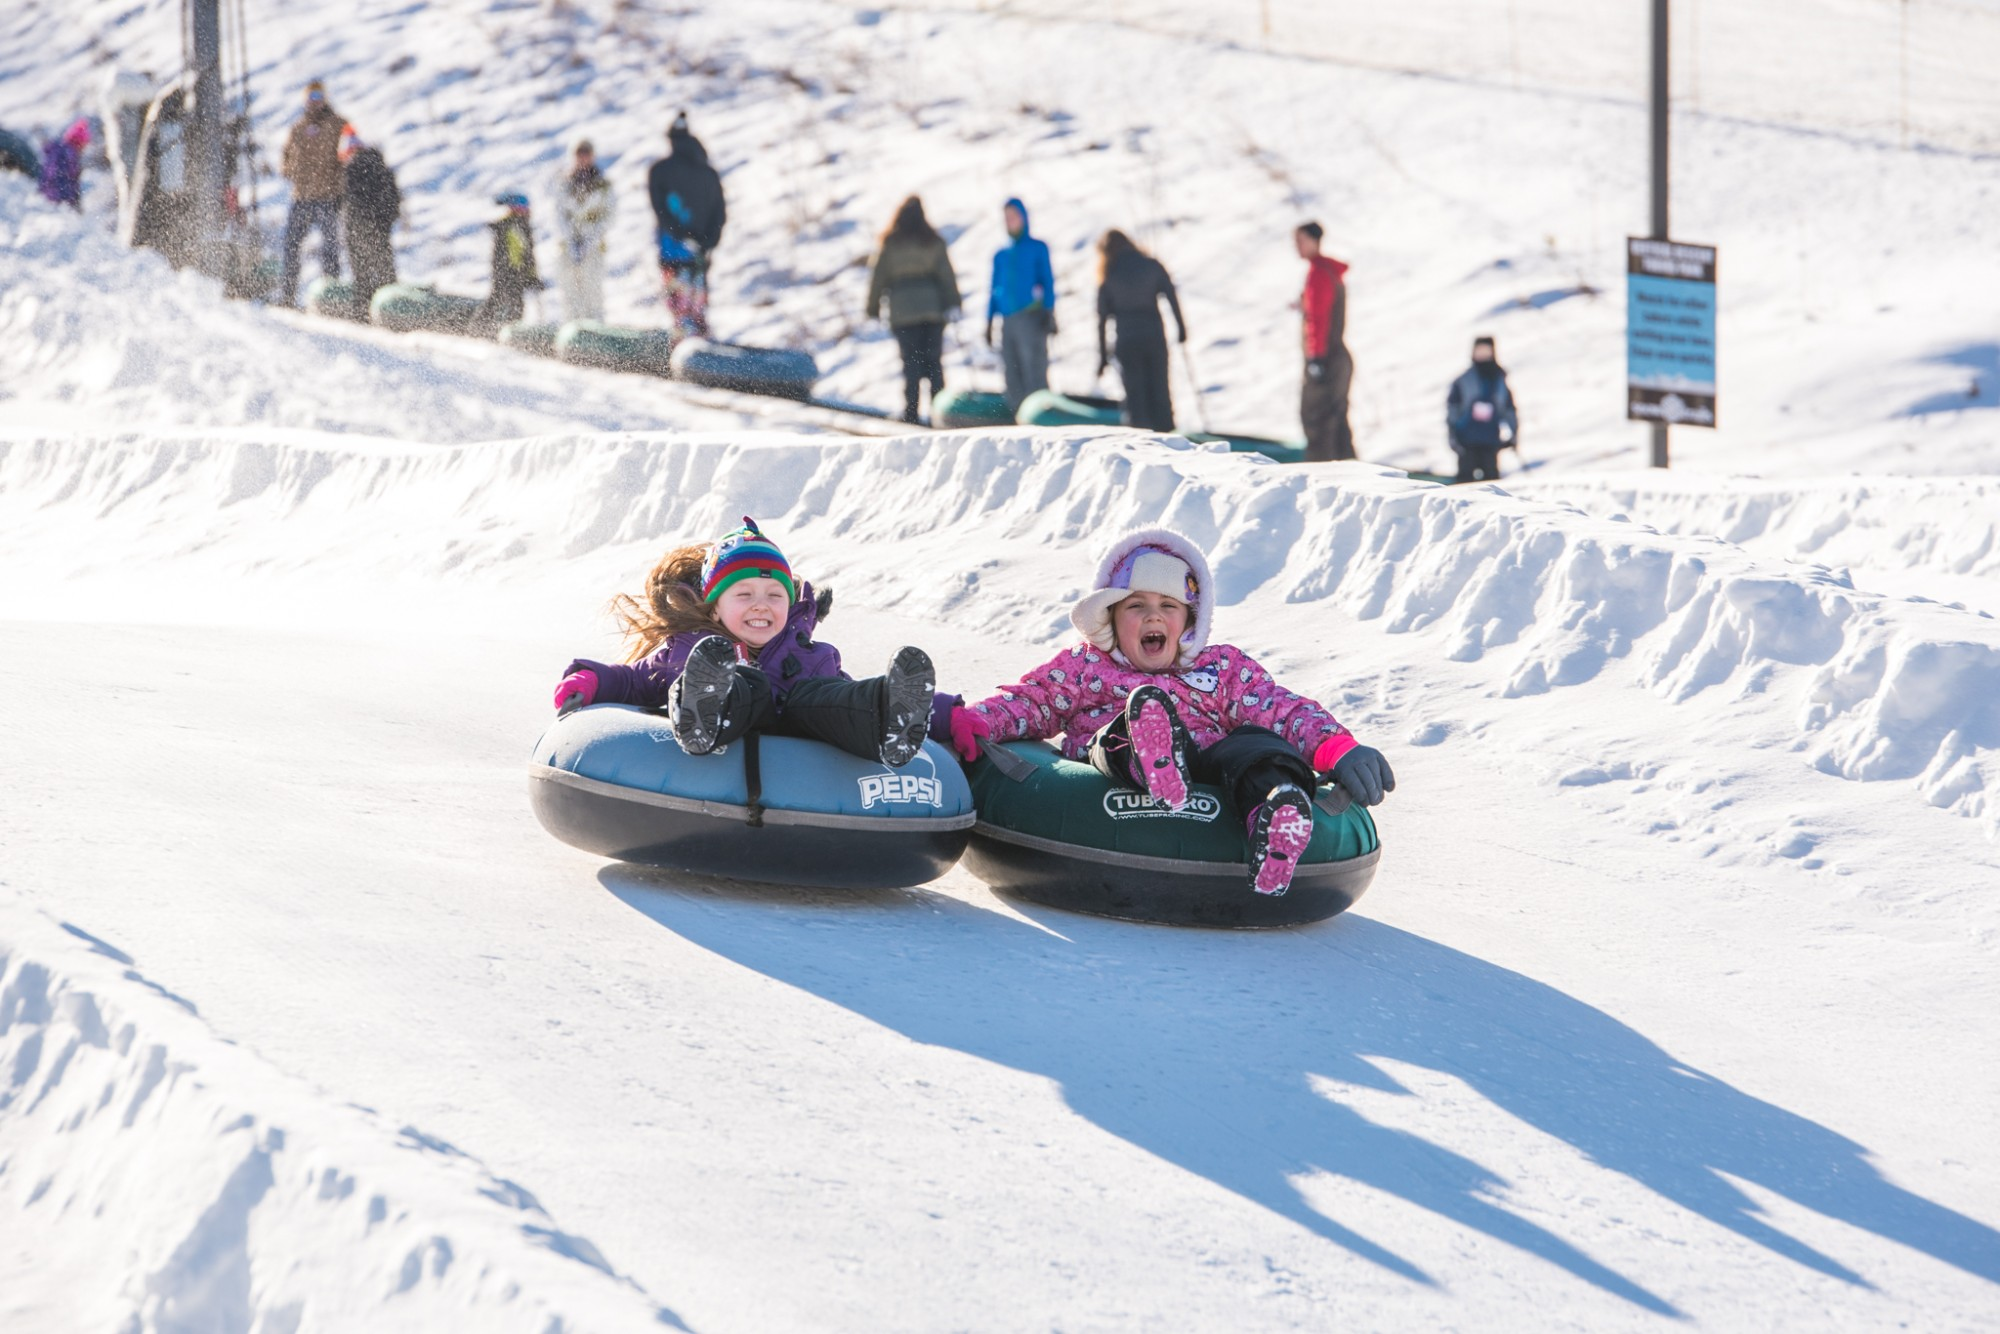 All smiles at Snow Trails Vertical Descent Tubing Park